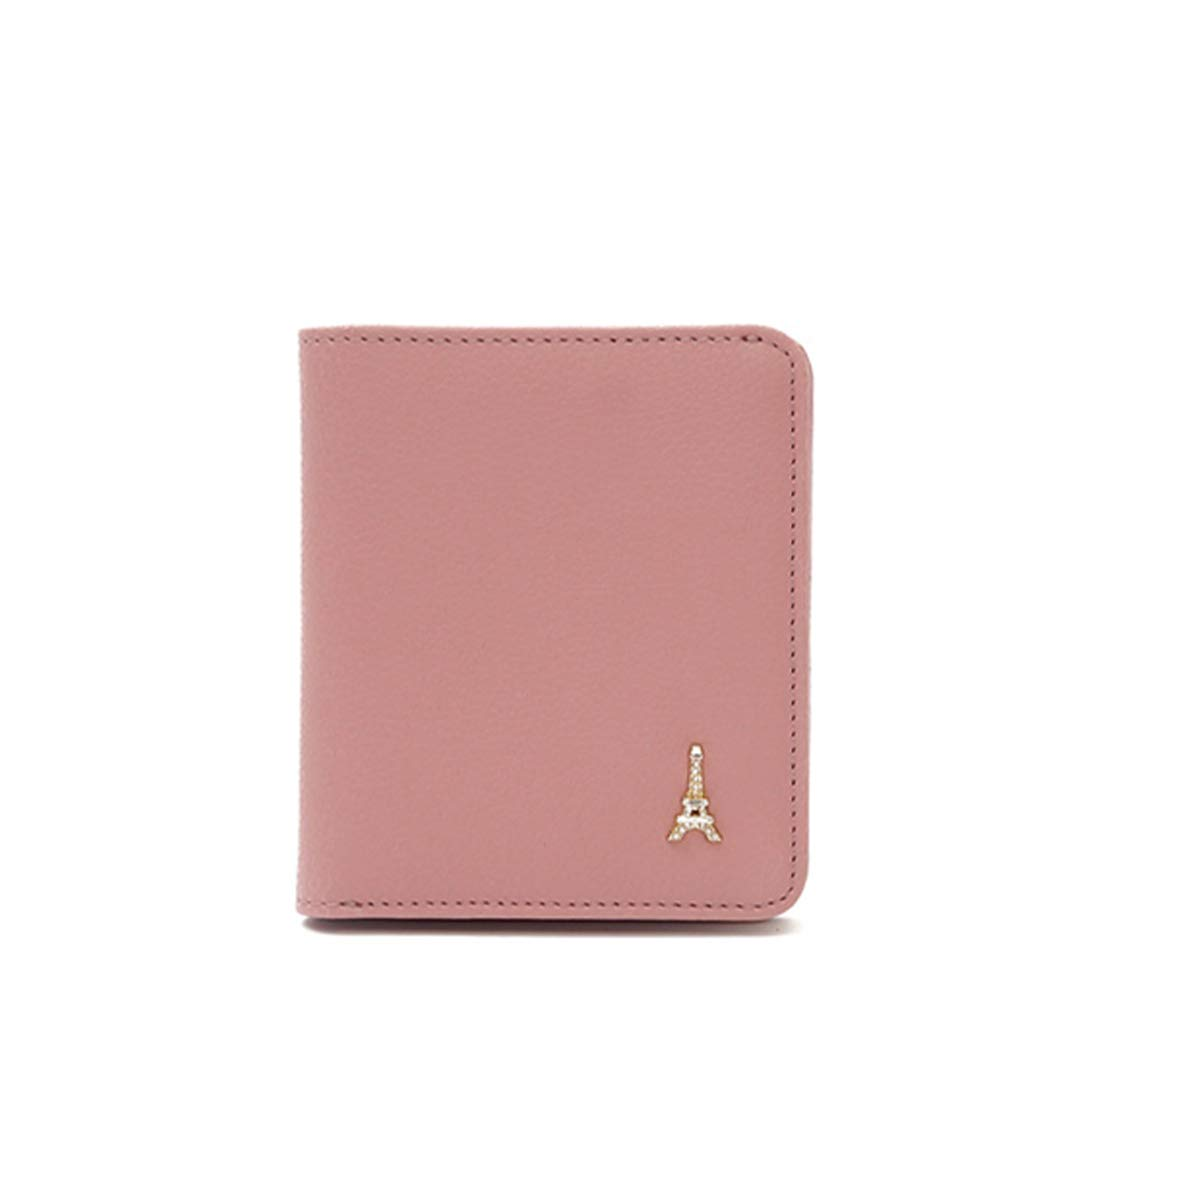 Xingganglengyin Card Package Female Small Cute Simple New Short Female Wallet Ultra-Thin Korean Student Small Wallet Color : Red